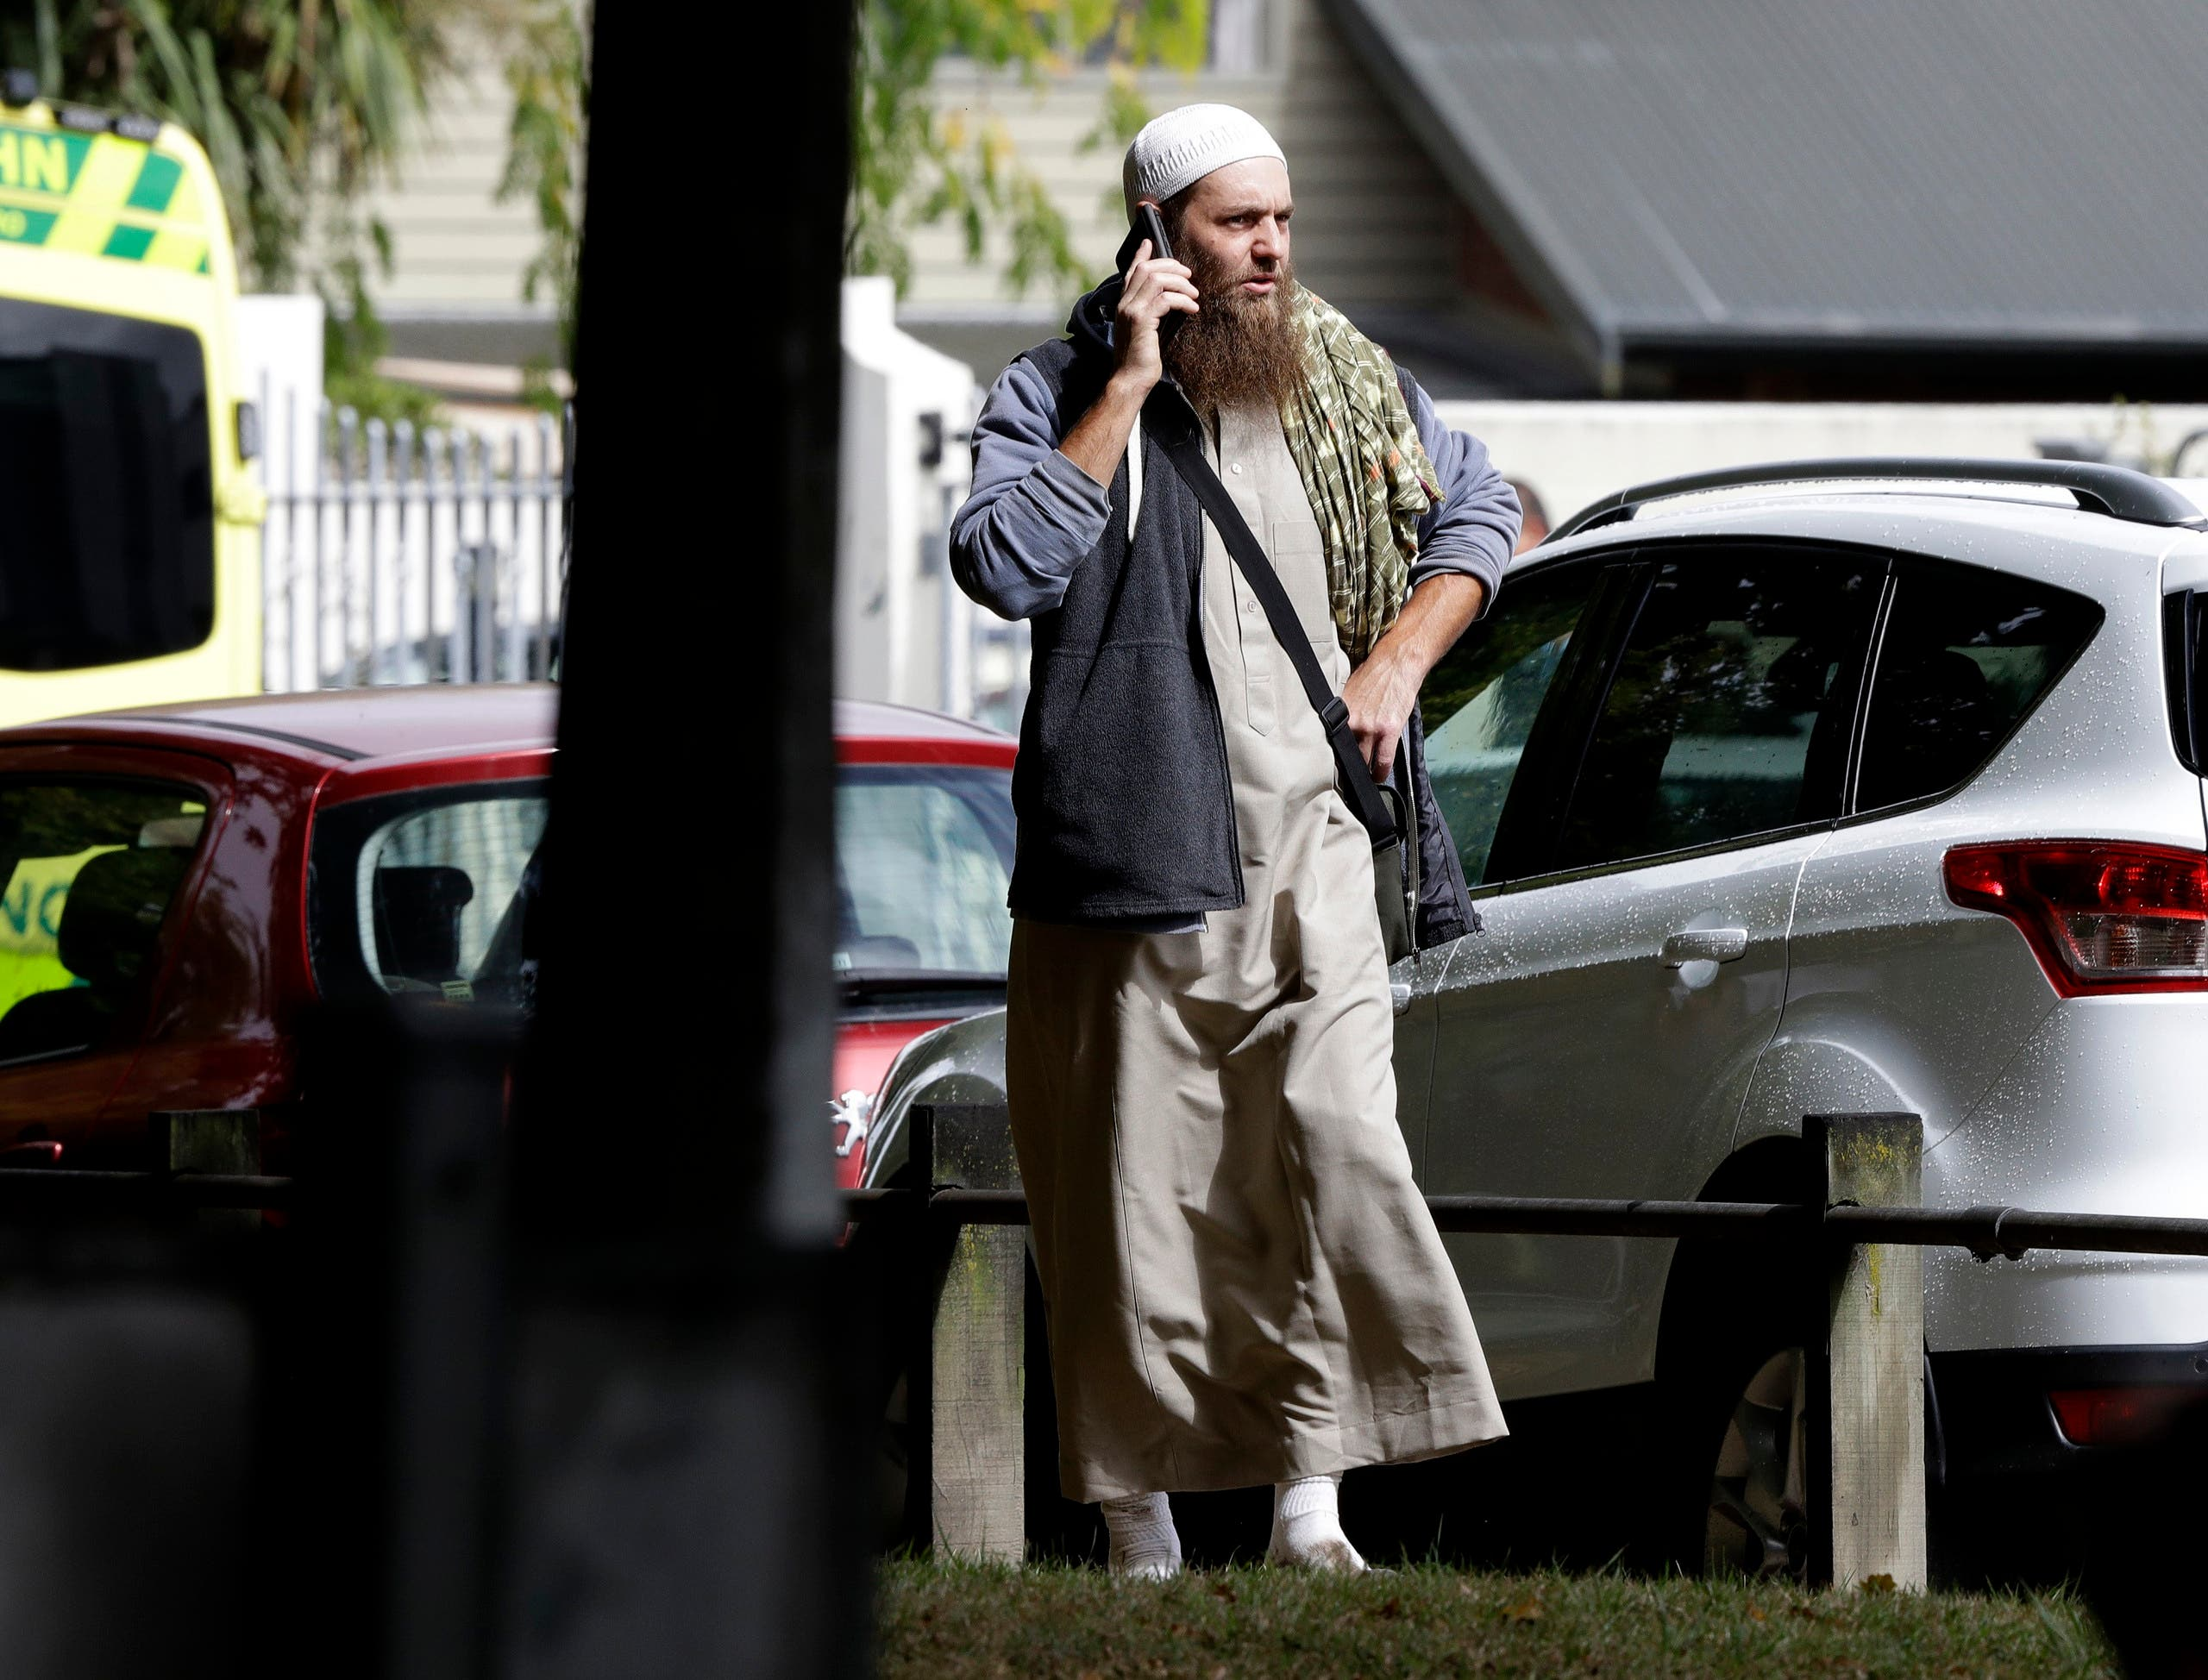 A man dressed in a military-style, camouflage outfit, and carrying an automatic rifle had started randomly shooting people in the mosque, police said. (AP)